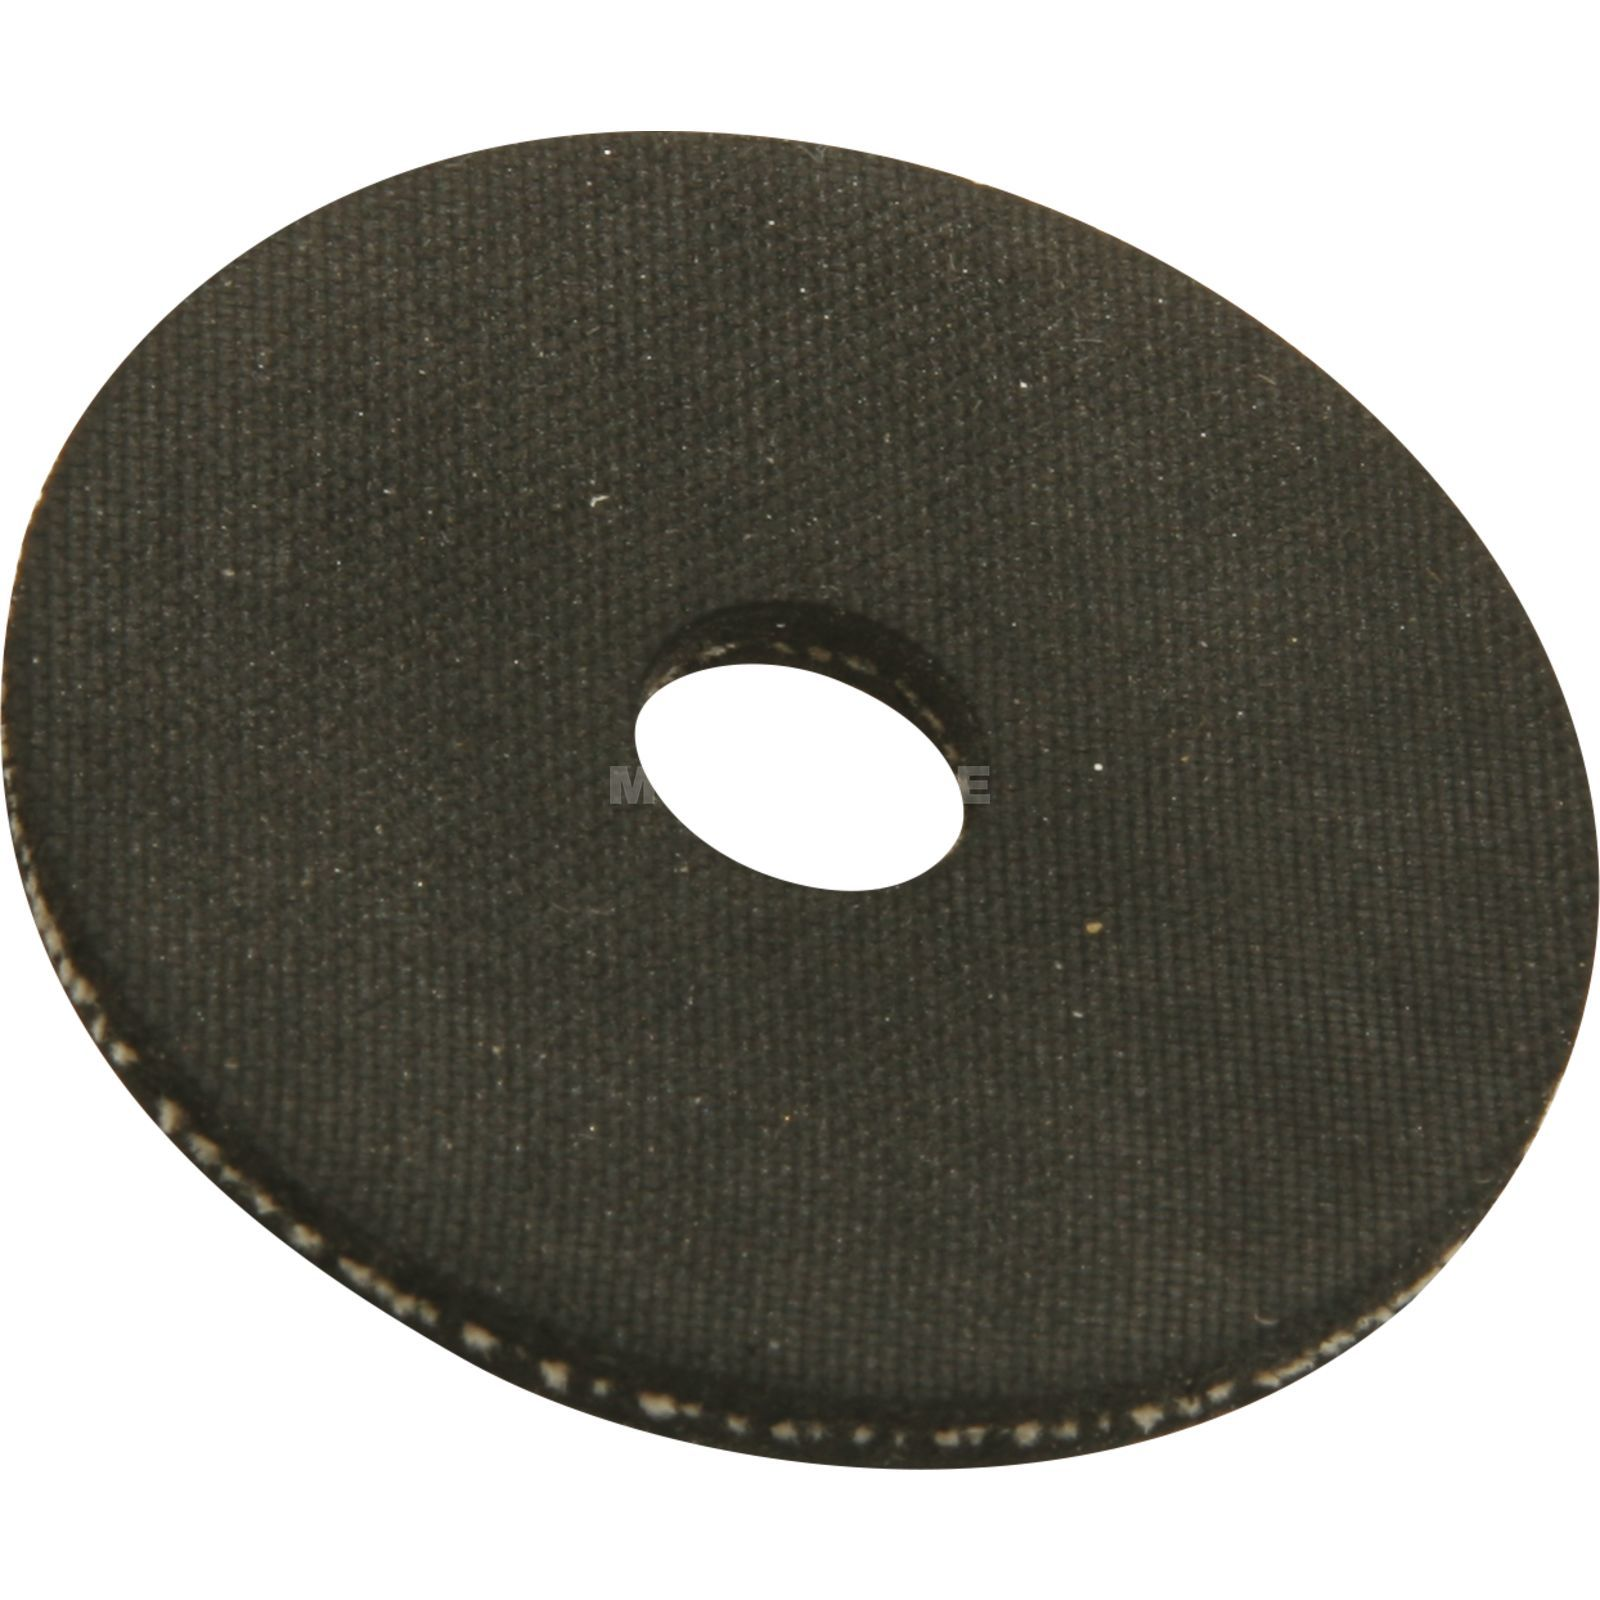 König & Meyer Rubber Washer - 3mm for Swing Arm Produktbillede